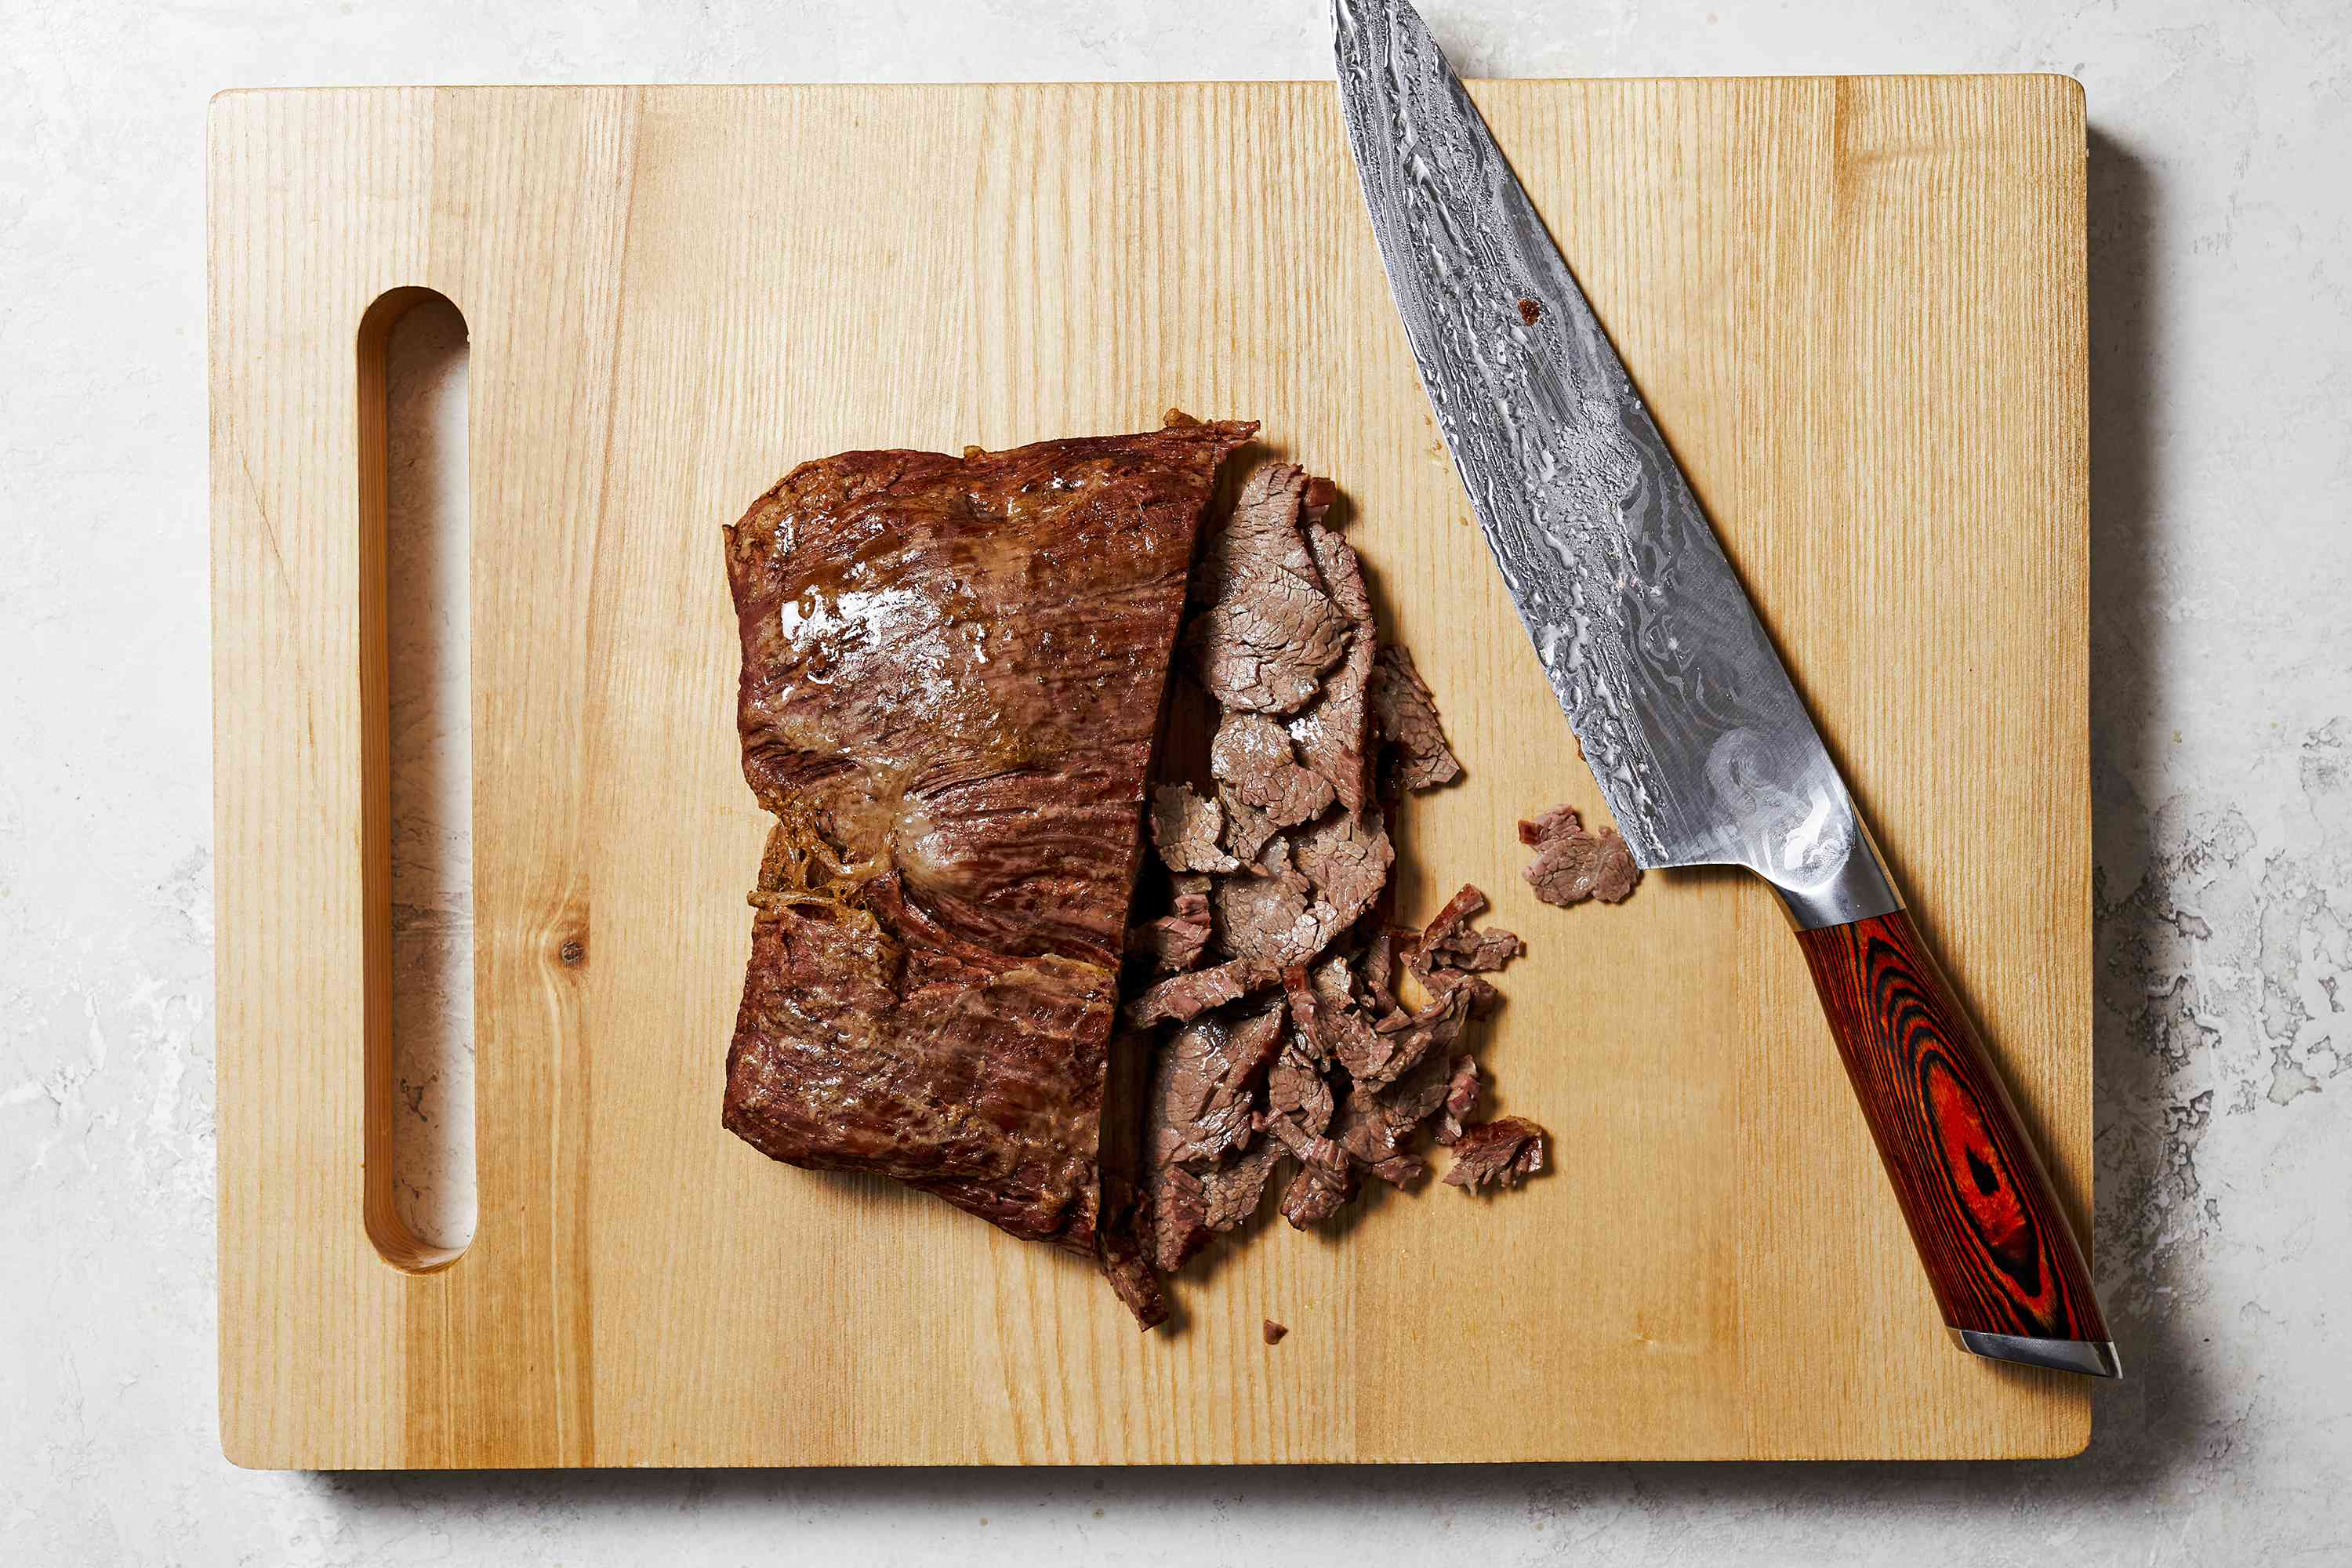 A photo of flank steak on a cutting board with slices cut